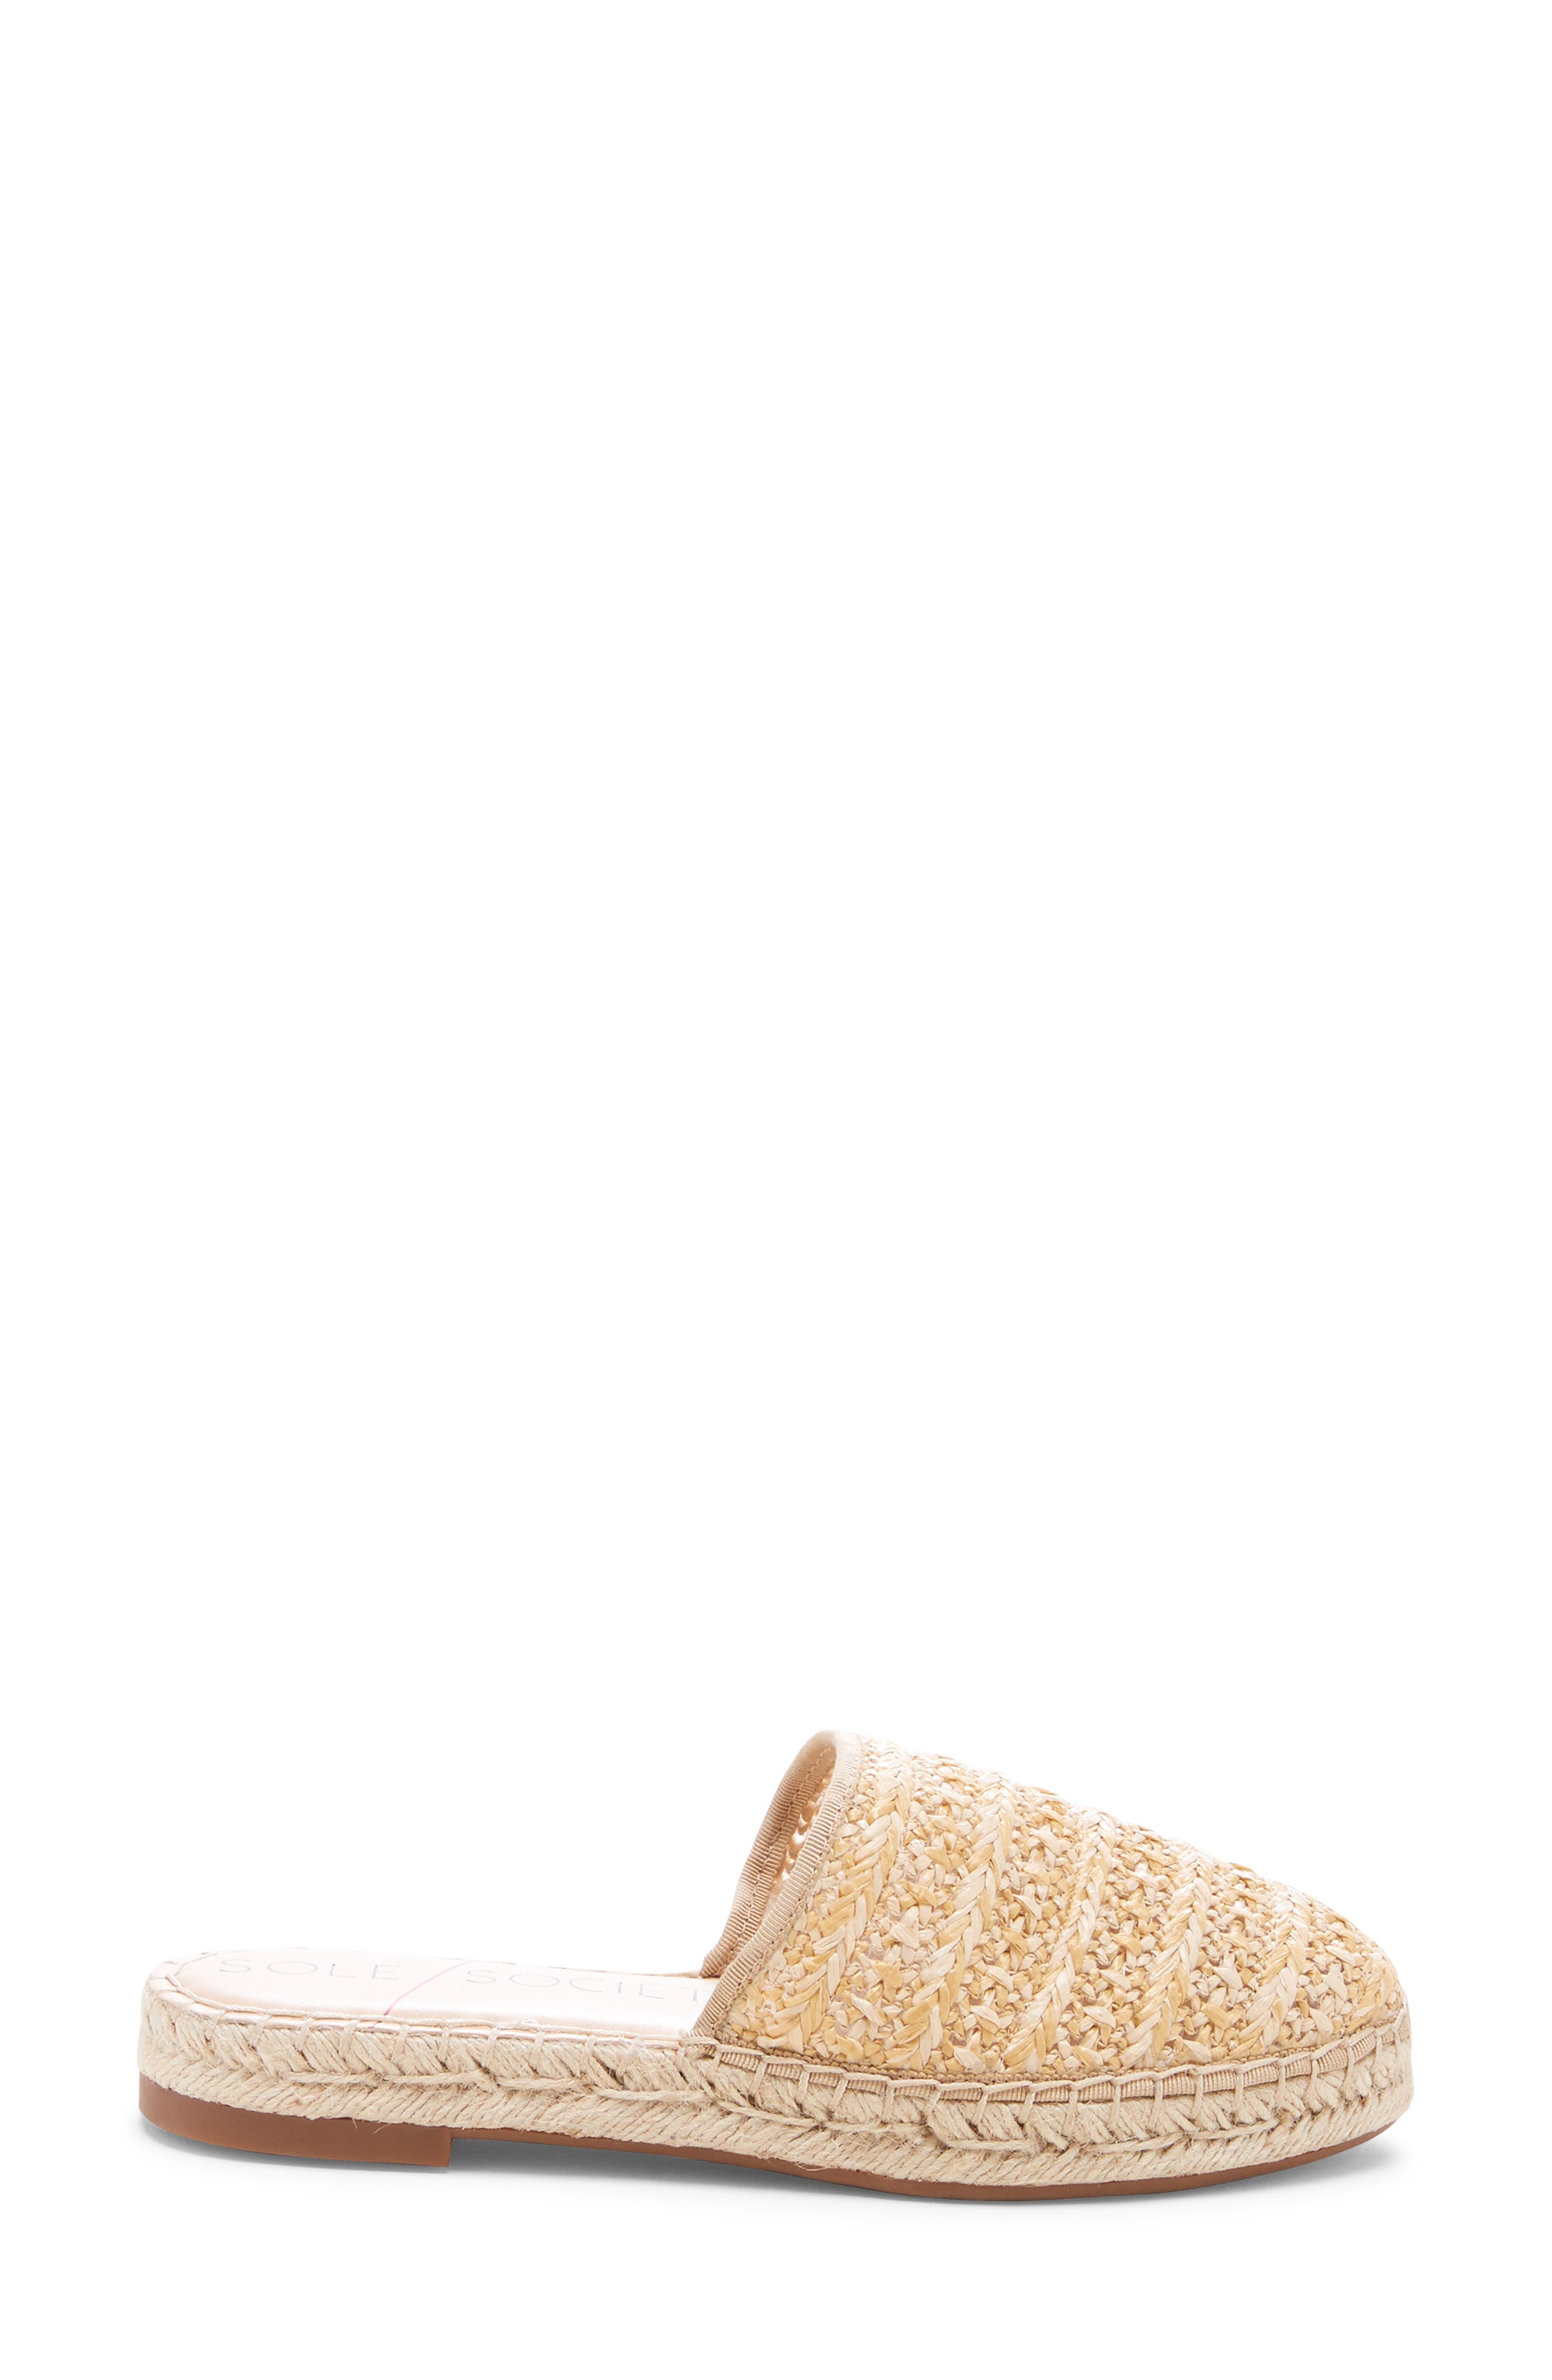 SOLE SOCIETY, Sadelle Espadrille Mule, Alternate thumbnail 3, color, NATURAL FABRIC